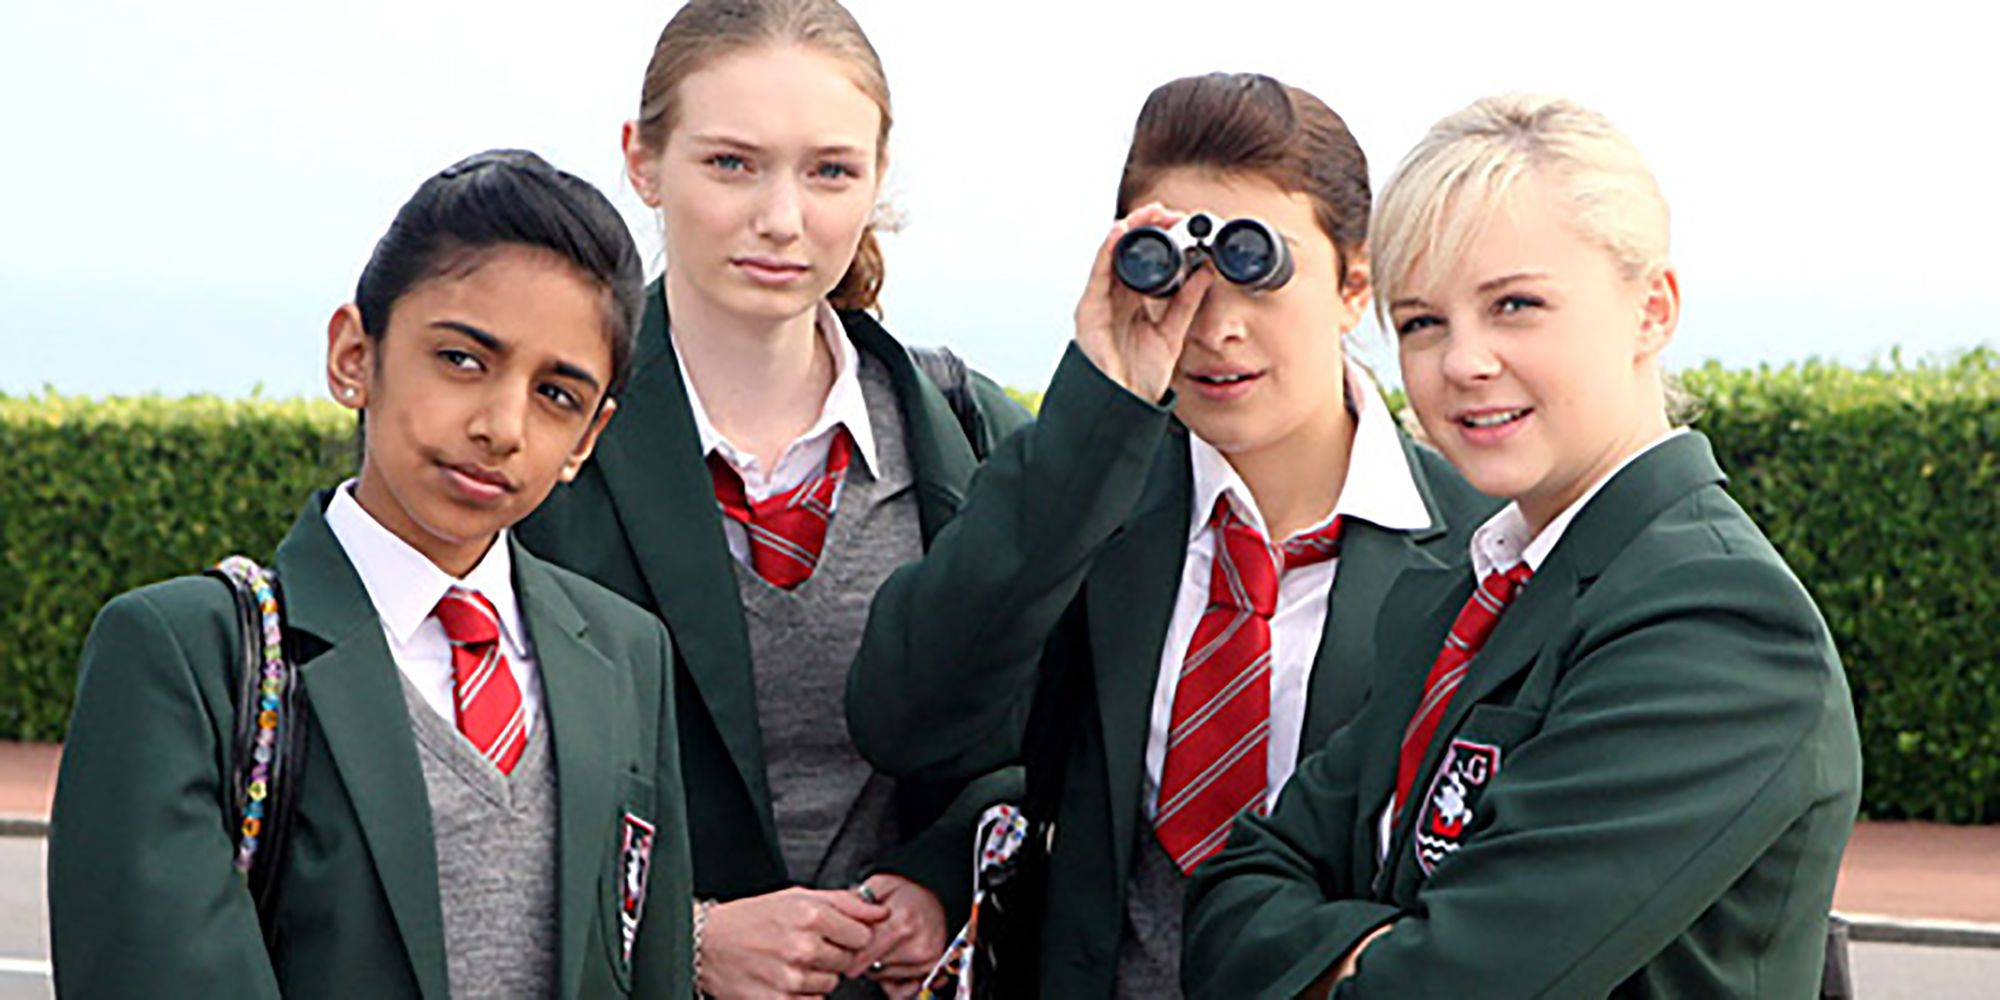 What are the cast of Angus, Thongs and Perfect Snogging